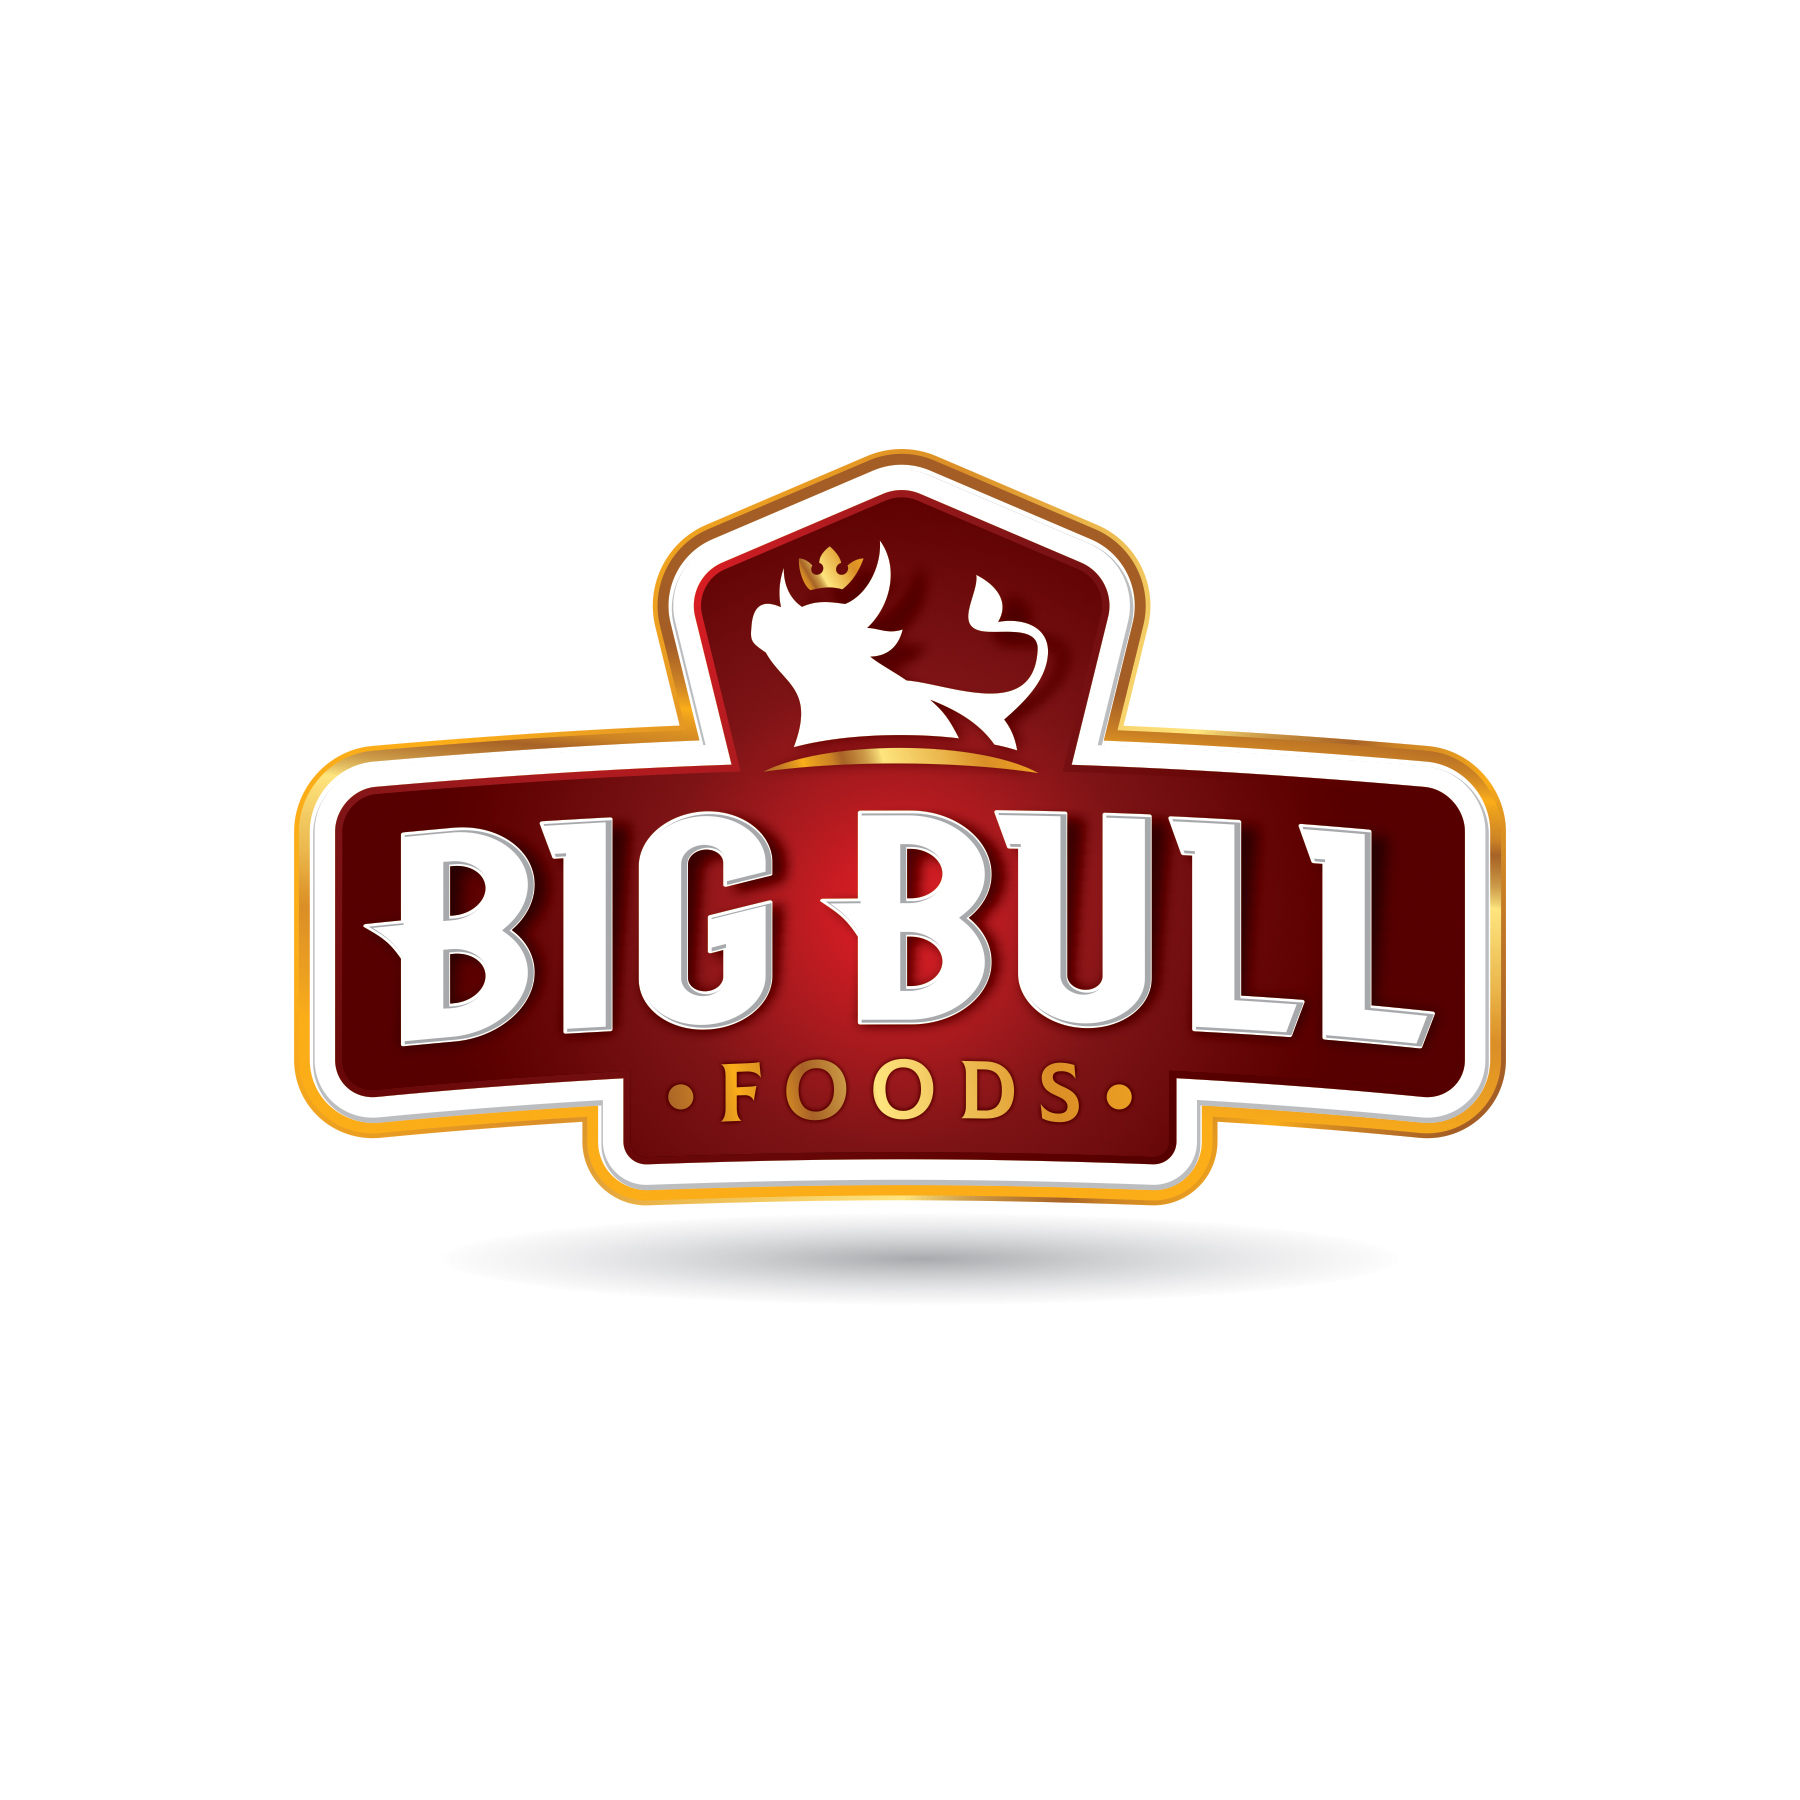 Big Bull logo design